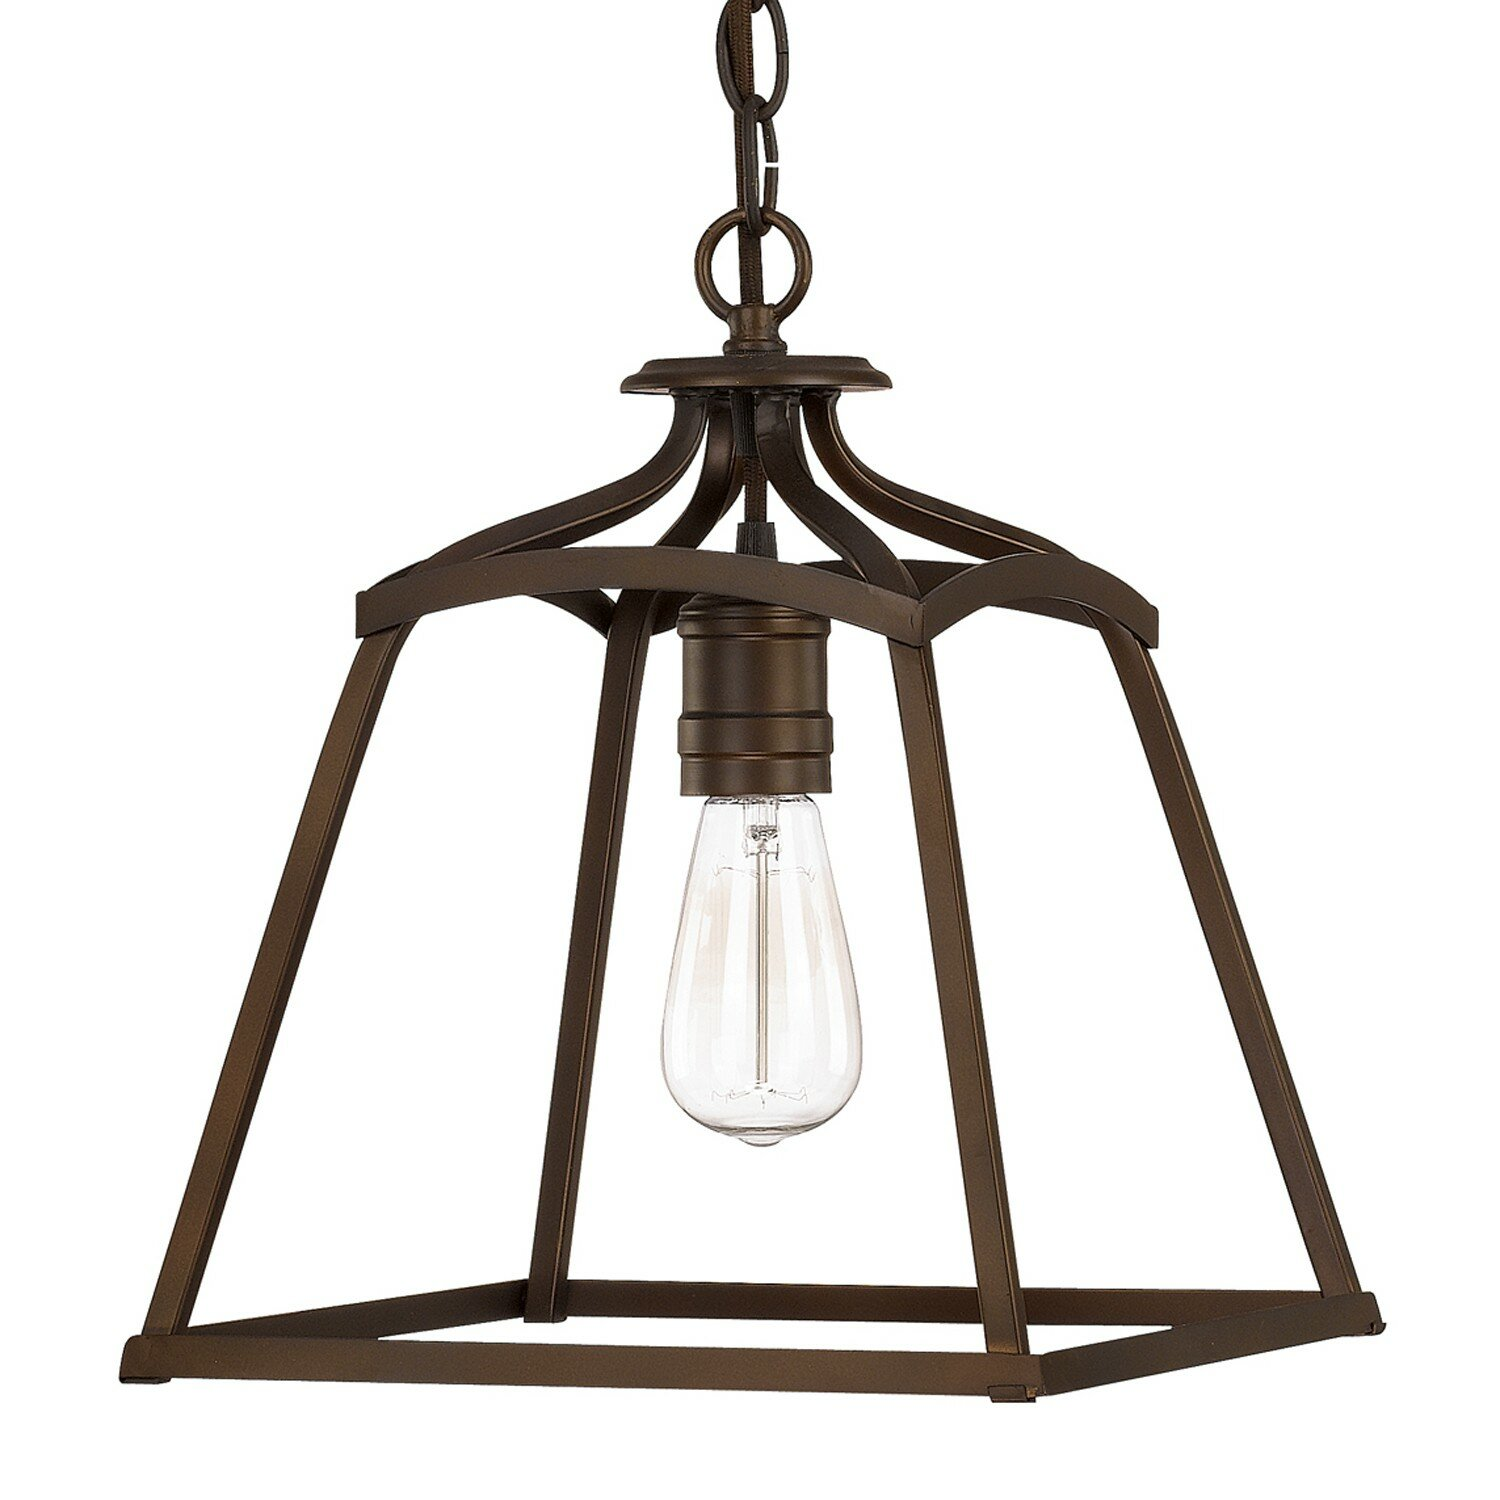 Foyer Ceiling Queen : Capital lighting foyer light pendant reviews